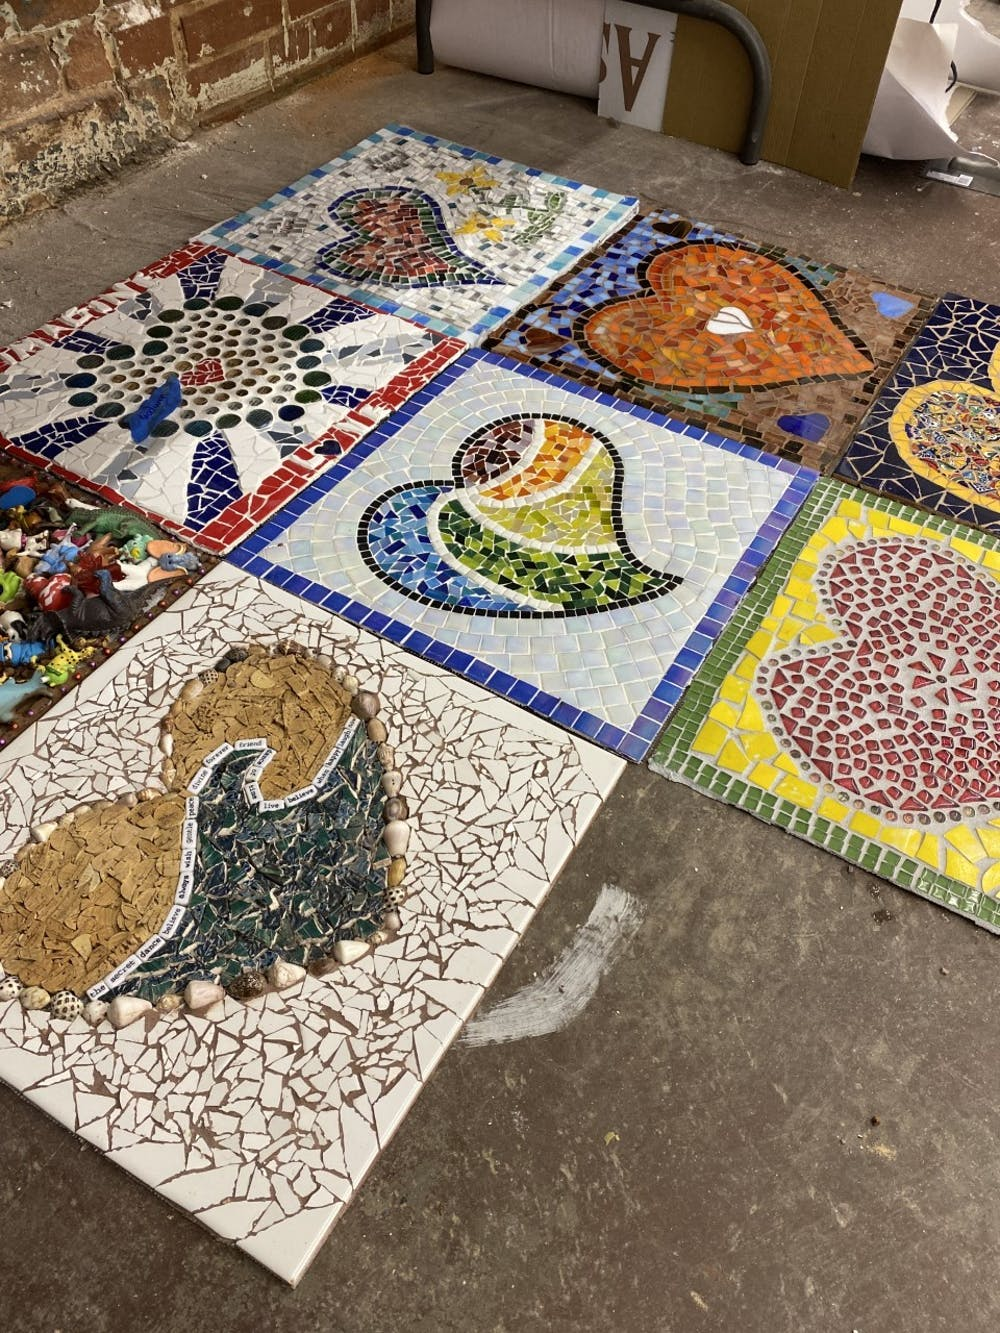 New mosaicist brings Hillsborough community together through collaborative mural